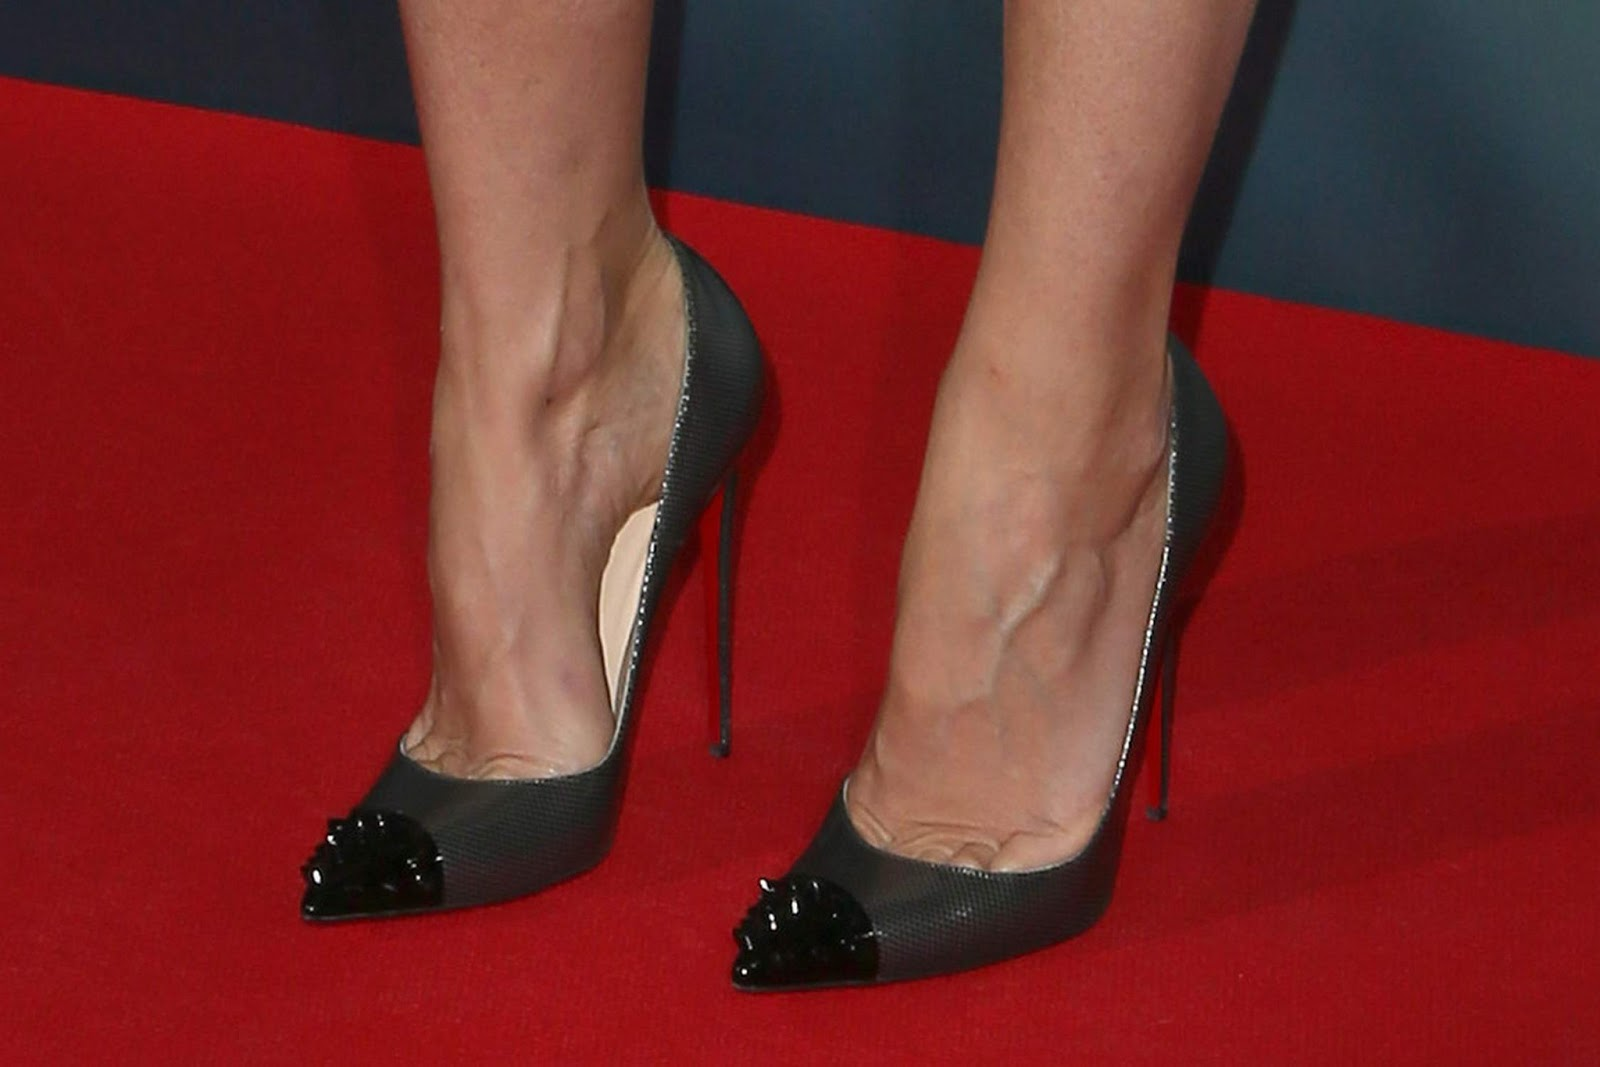 What Are The Best Shoe Inserts For High Heels